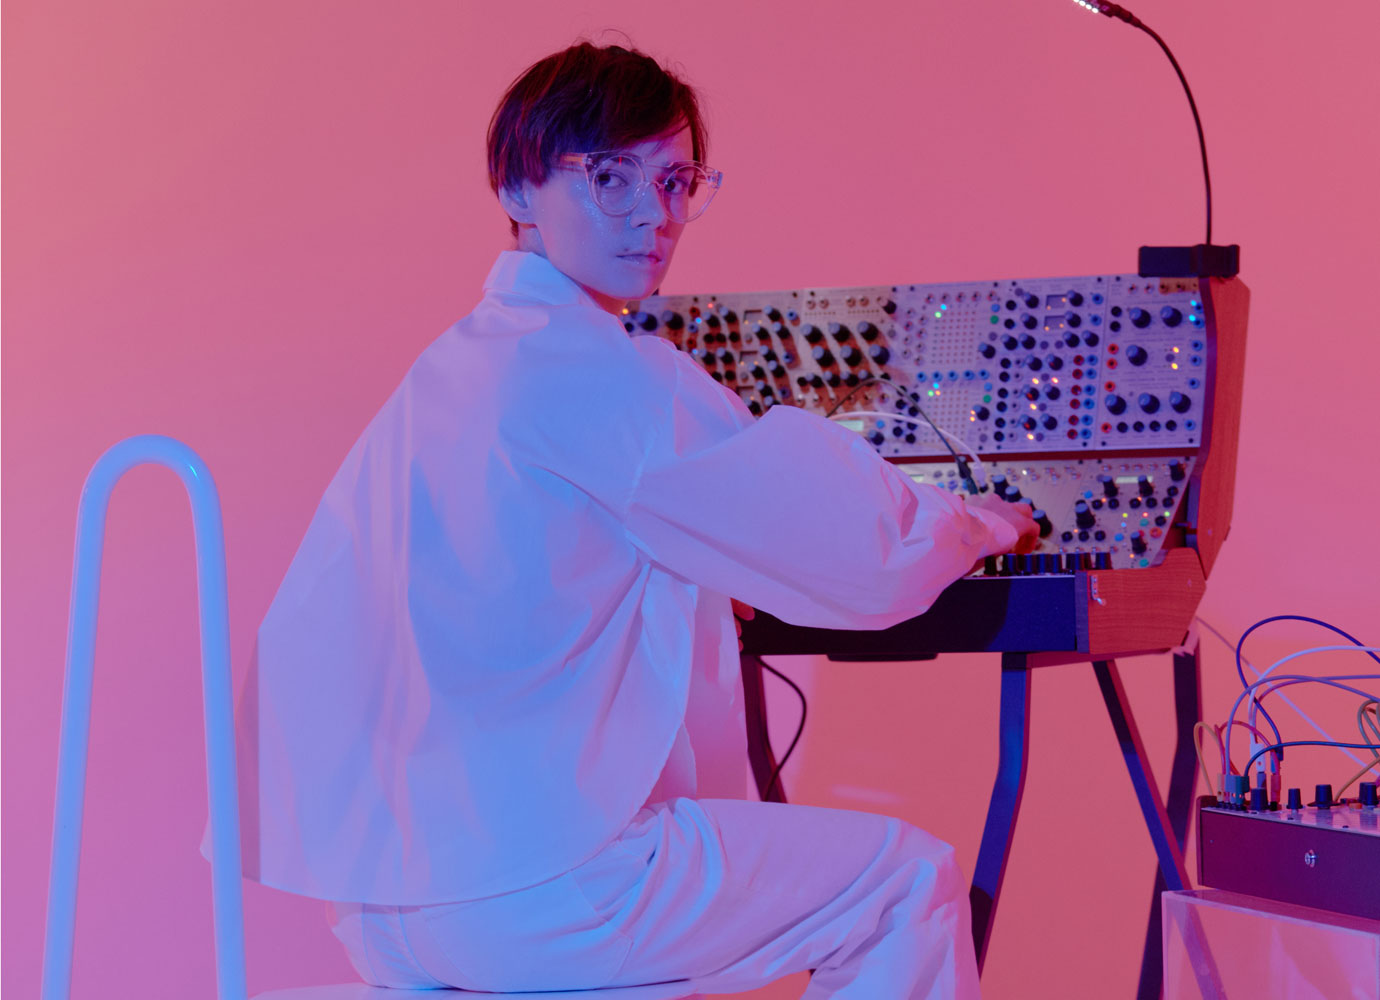 Inspired by space dreams, Maria Teriaeva's enchanting synth-pop is a soothing balm for strange times